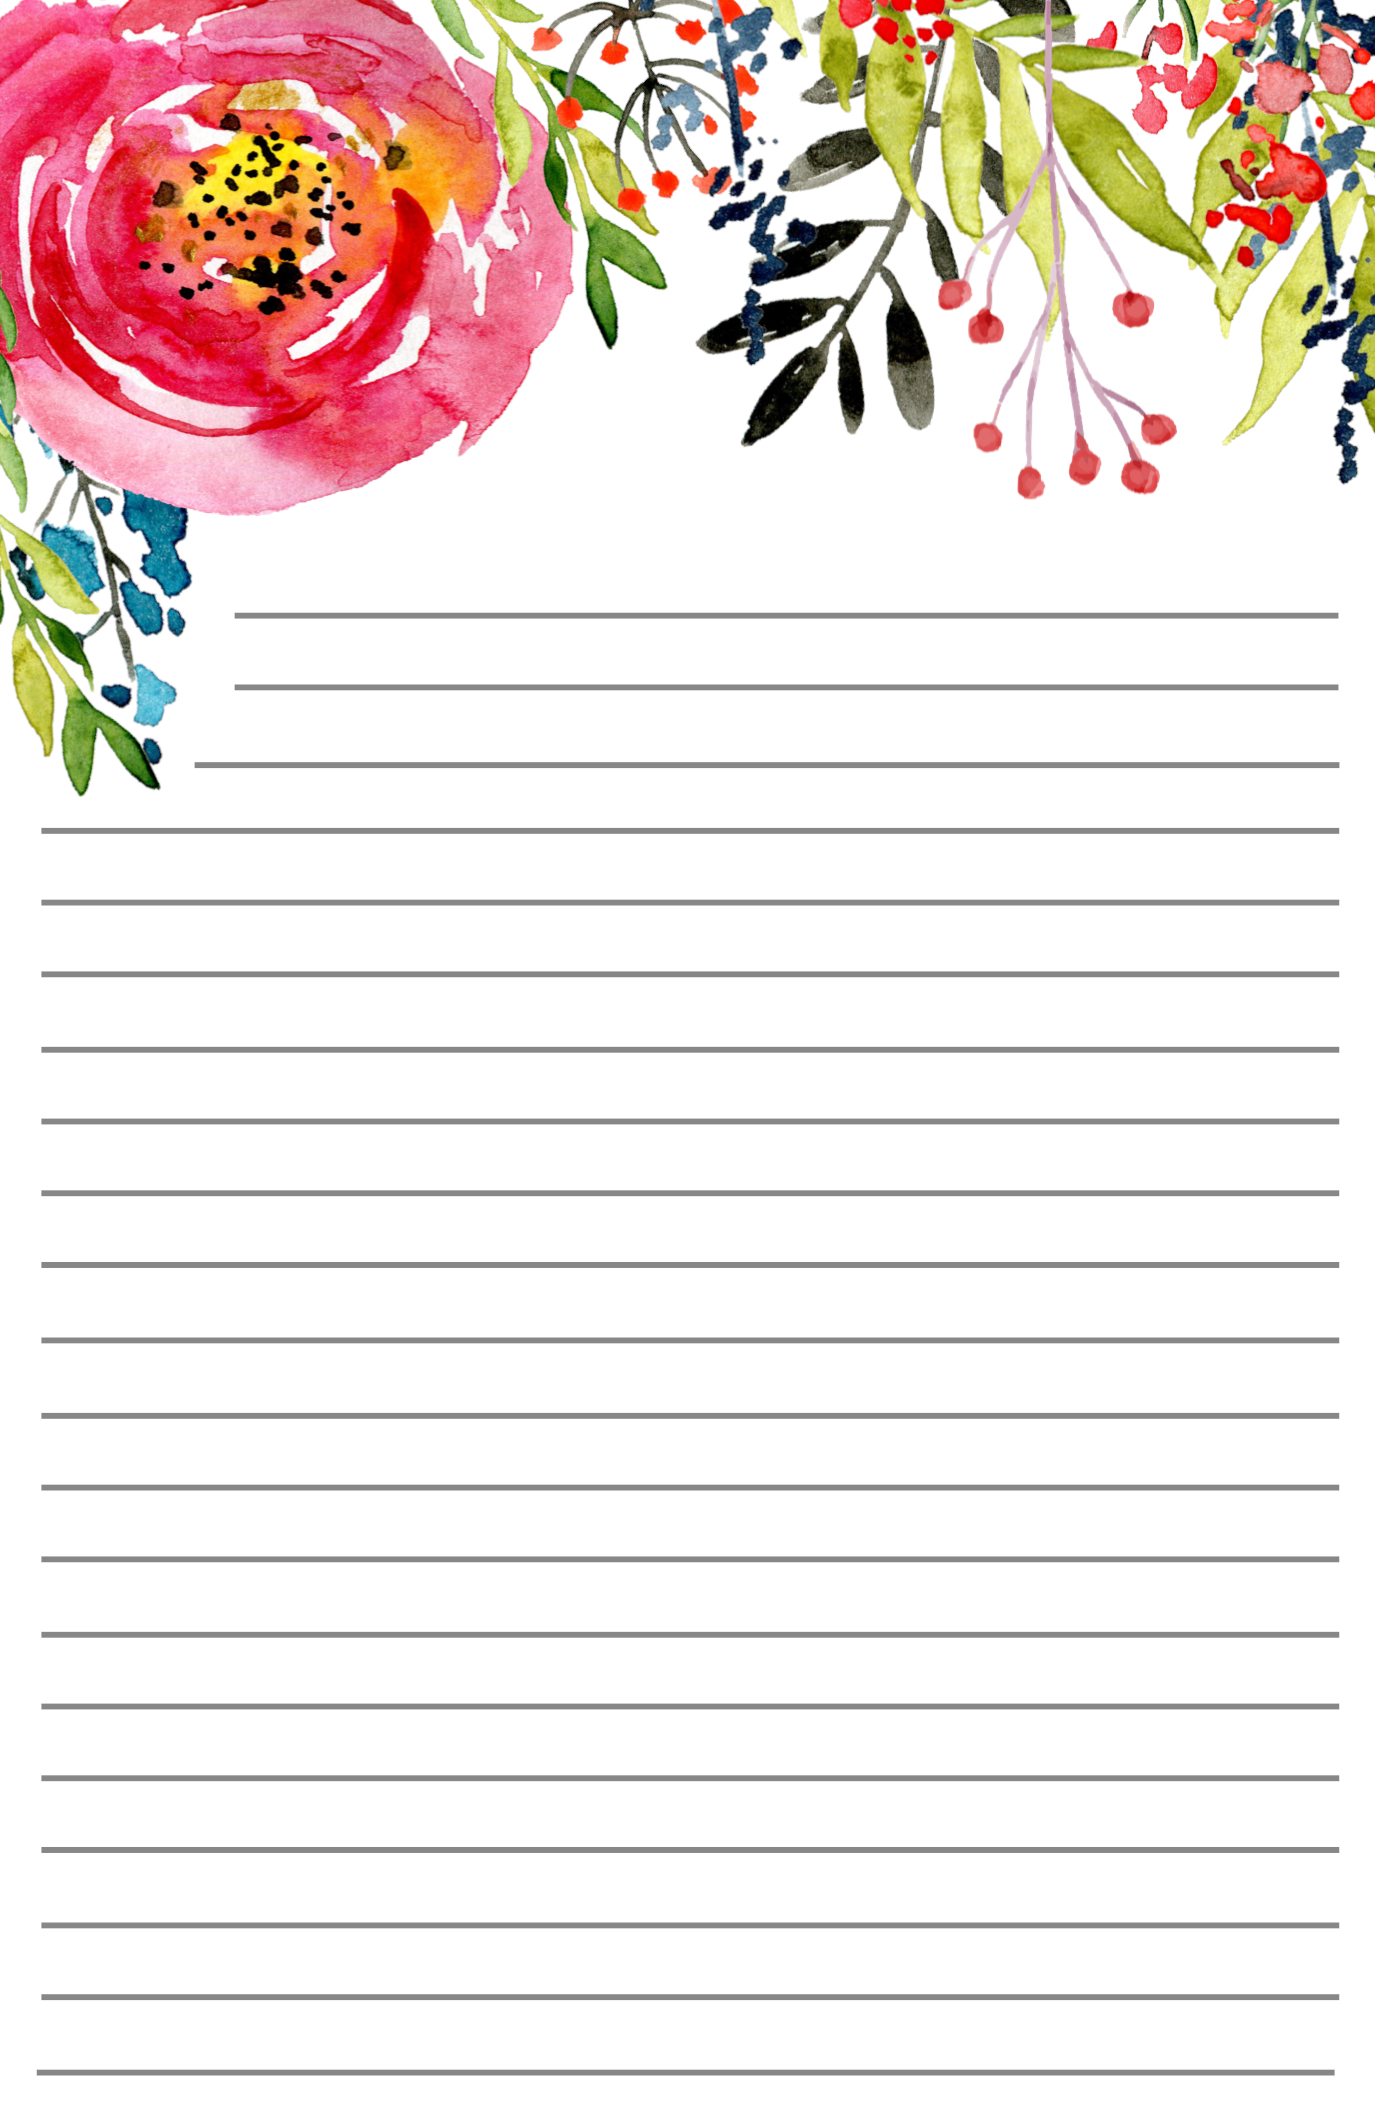 photo about Free Printable Stationary named Free of charge Printable Floral Stationery - Paper Path Design and style